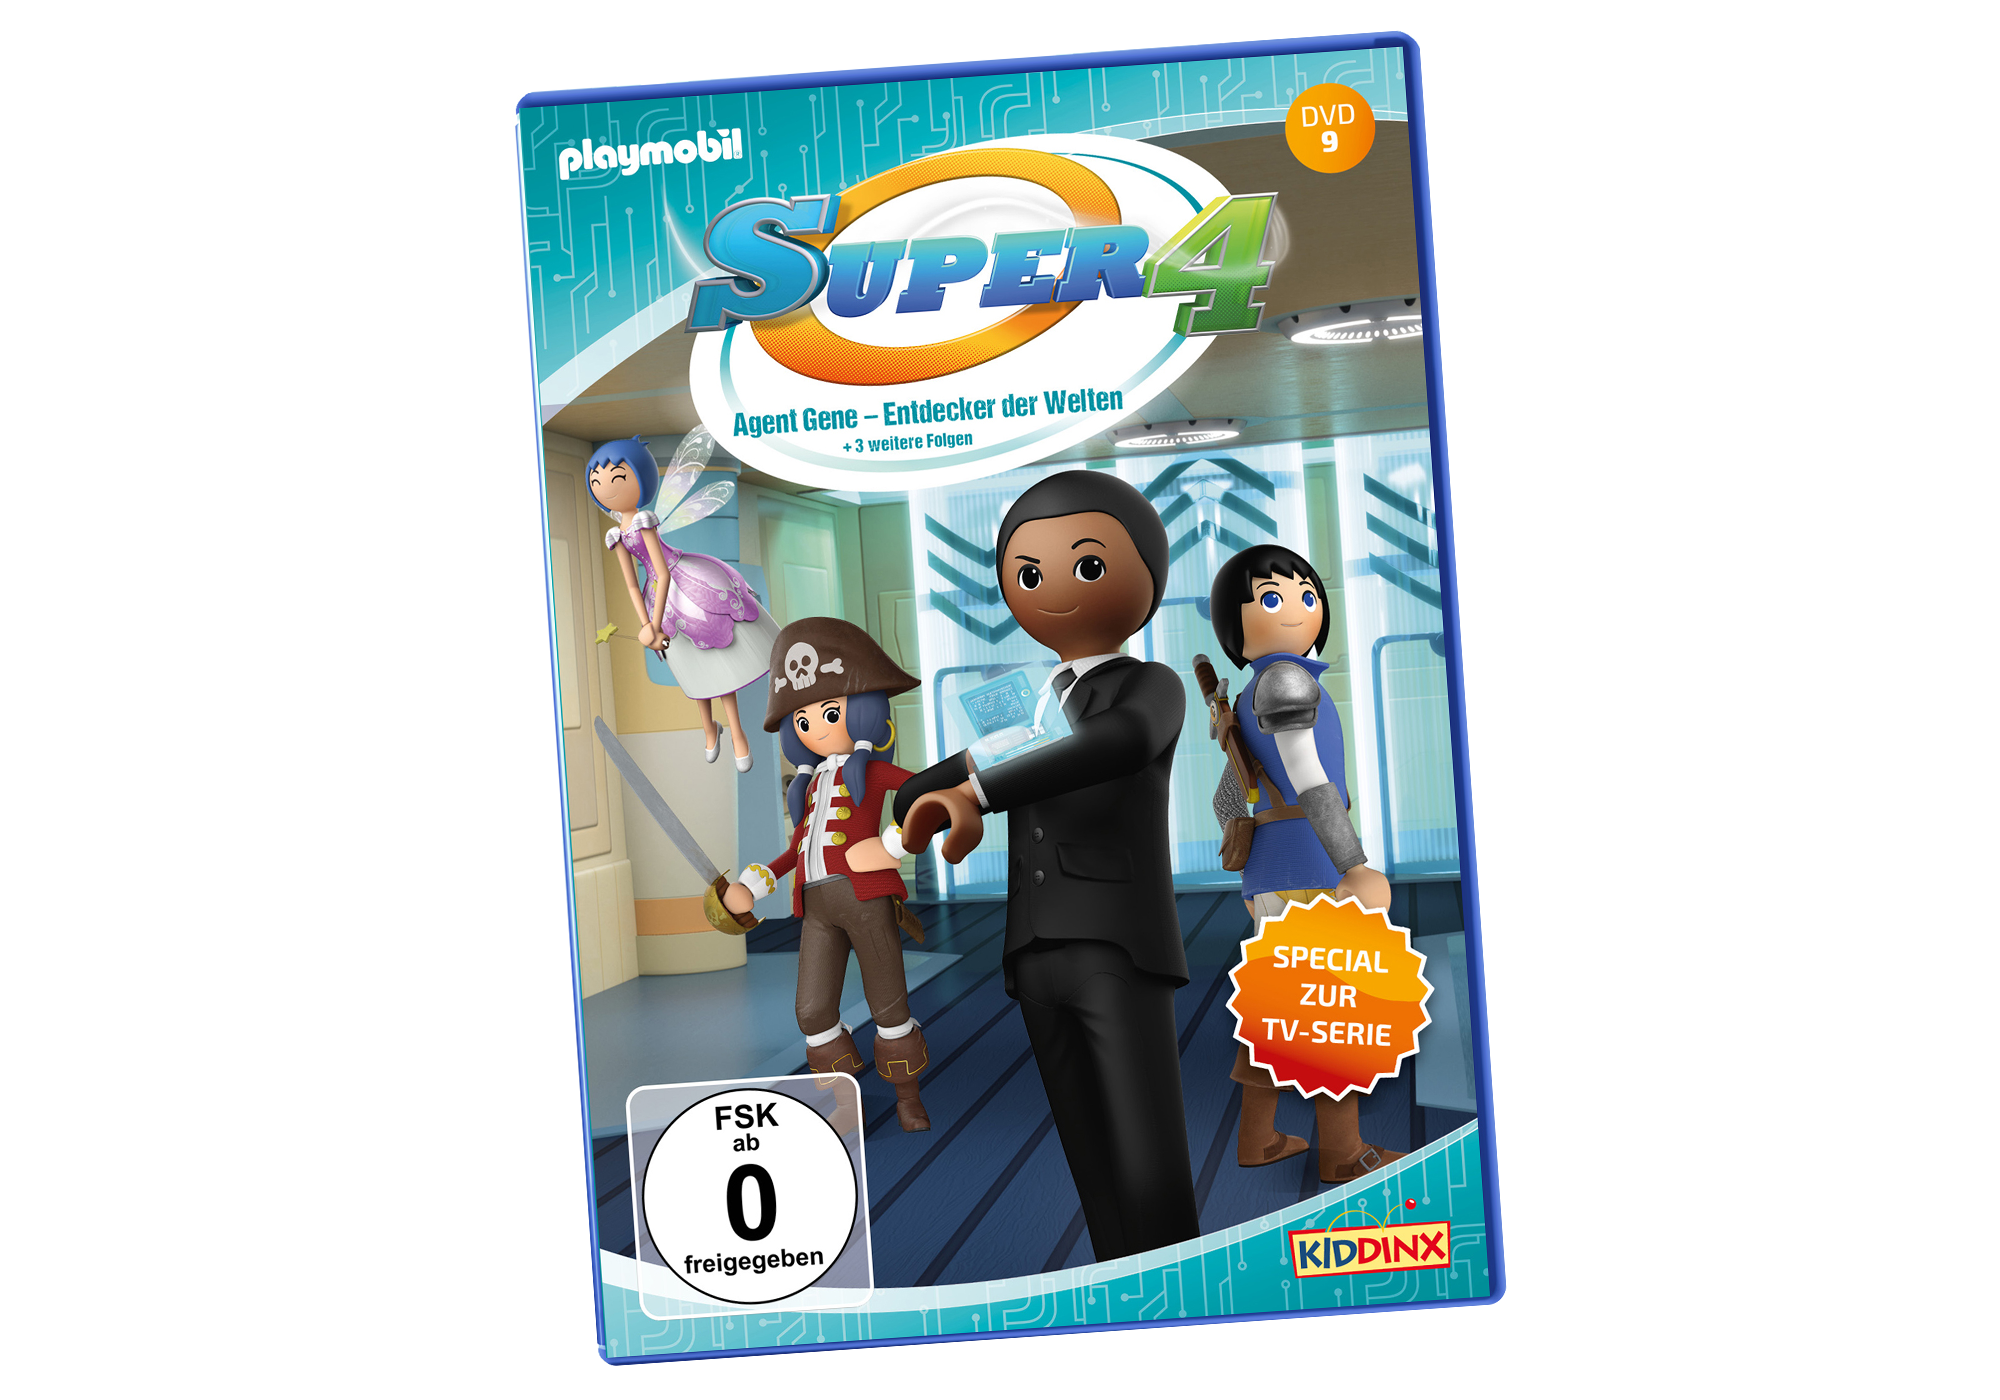 http://media.playmobil.com/i/playmobil/80021_product_detail